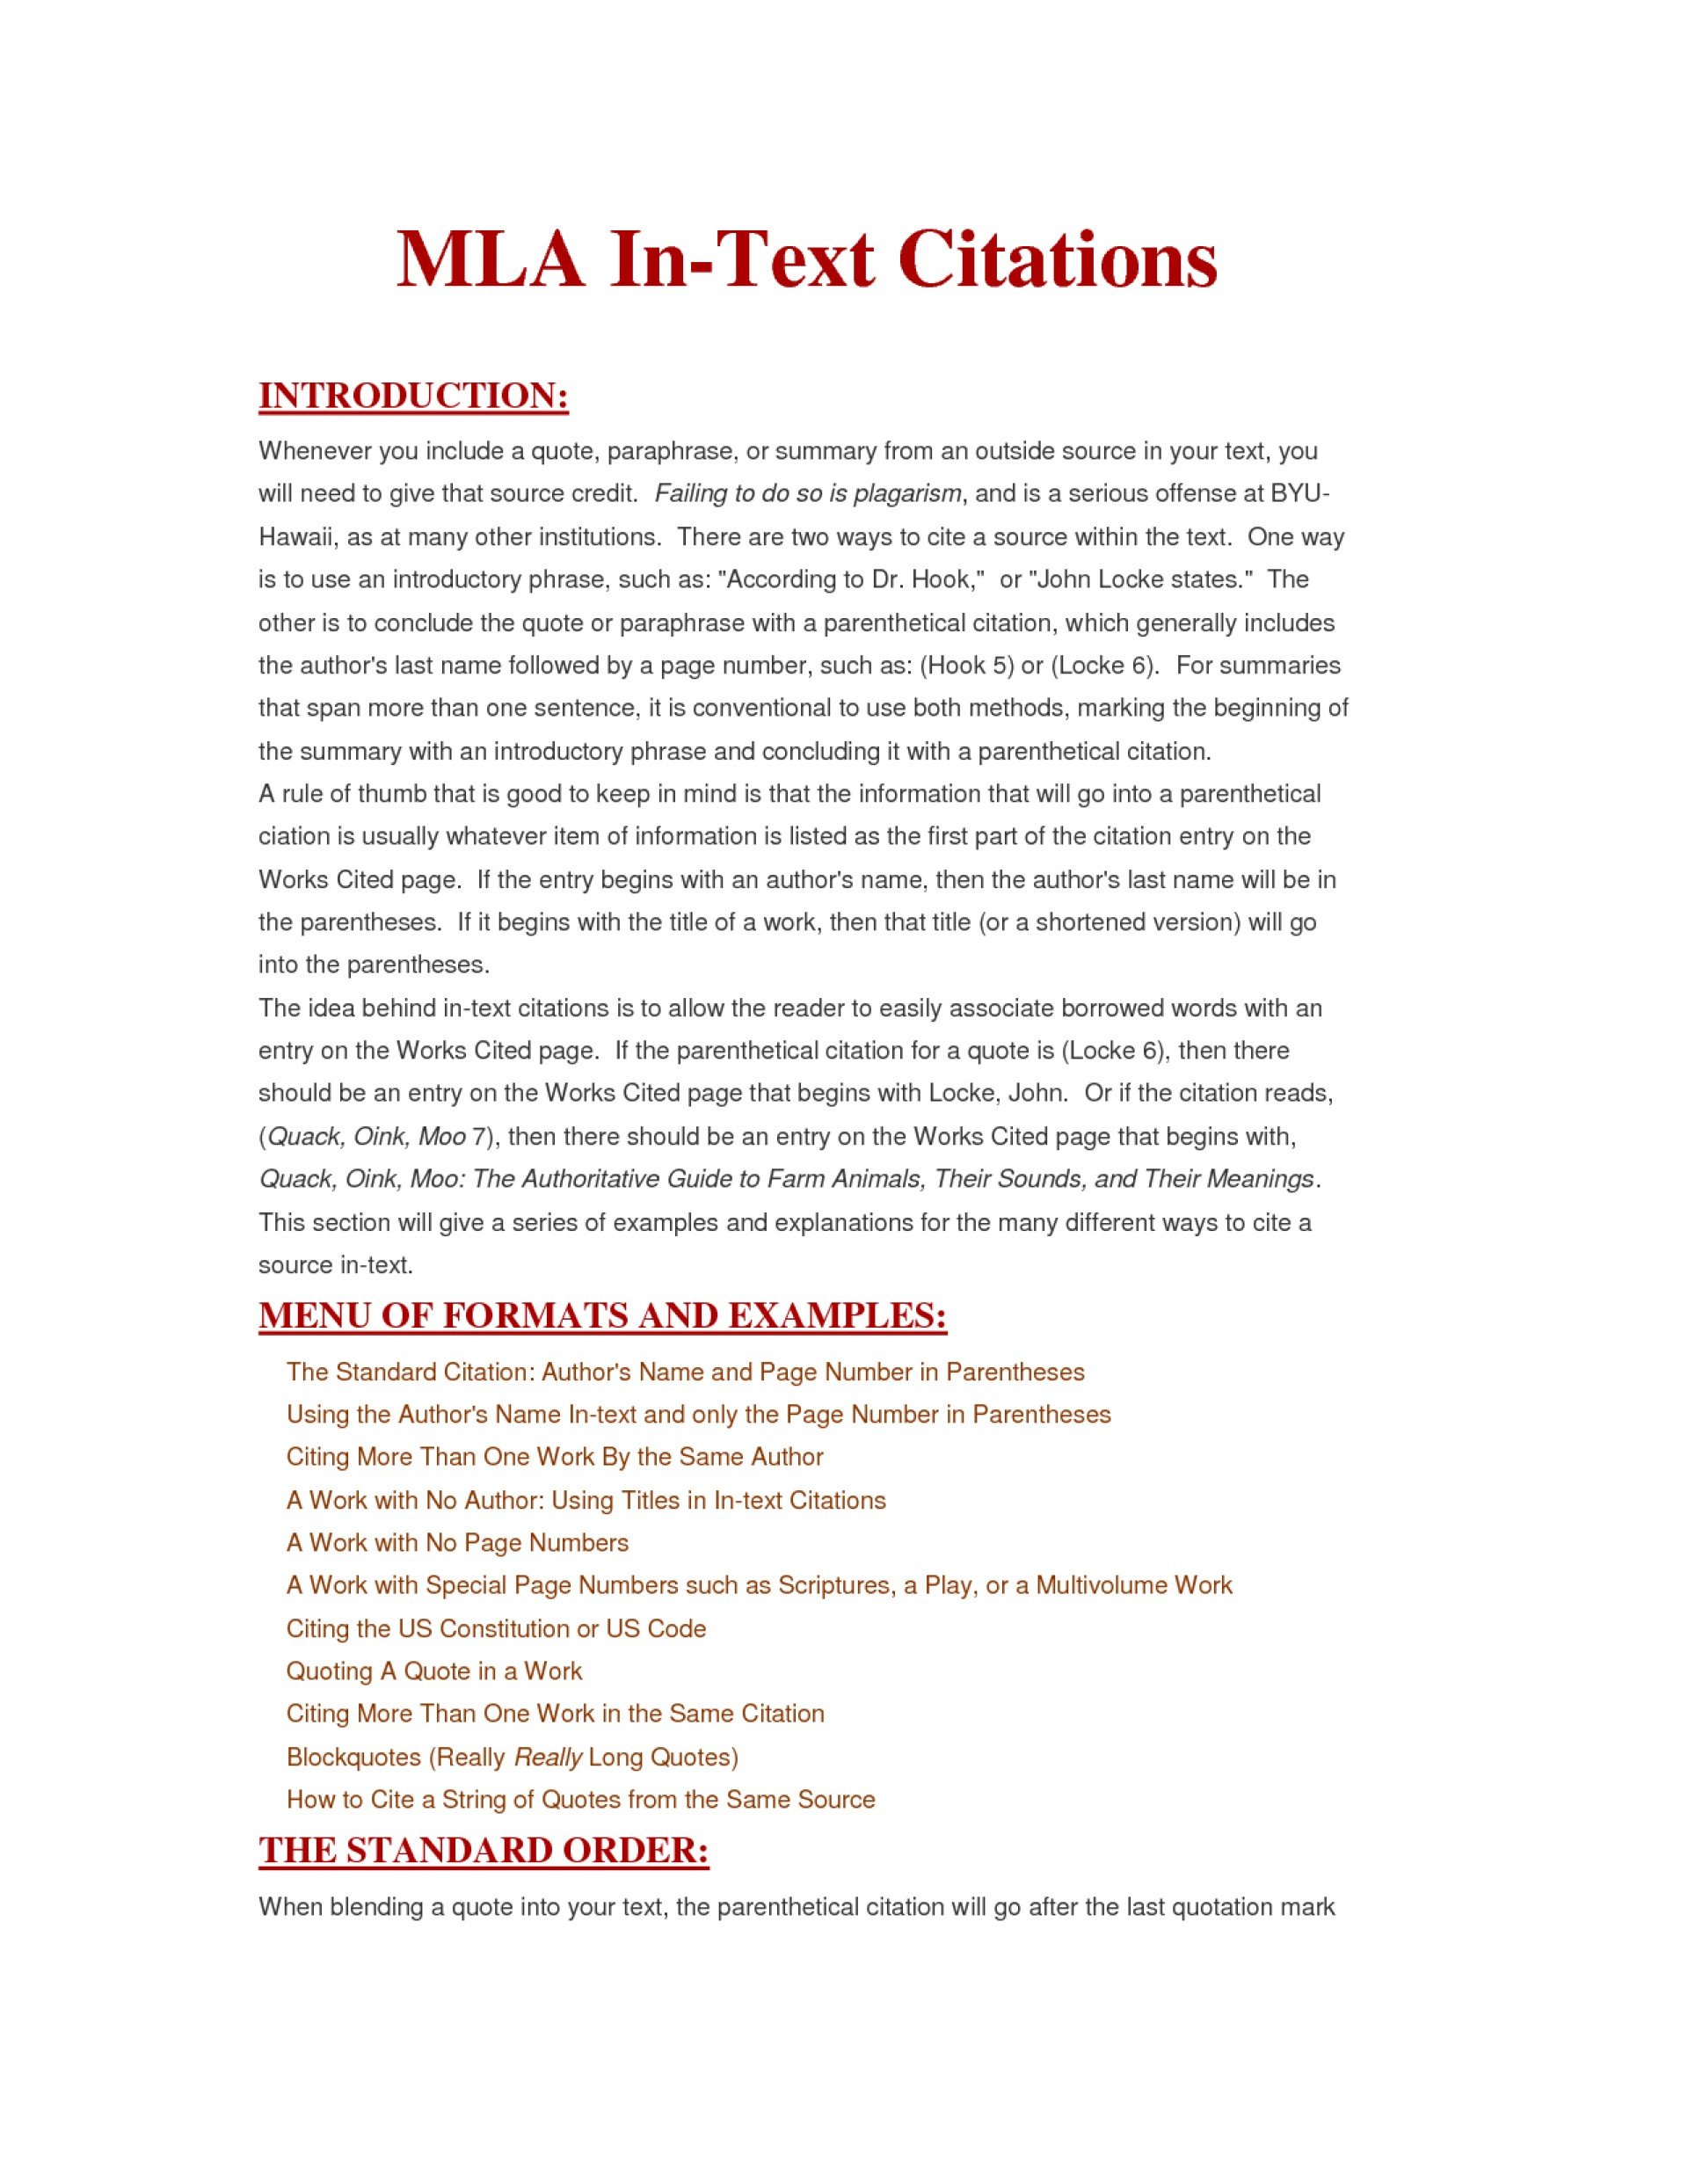 024 Essay Example How To Quote Book In An Mla Citation Format Mersn Proforum Co Write Page References Academic Website At The End Of Online Formidable A Apa Style With Multiple Authors 1920